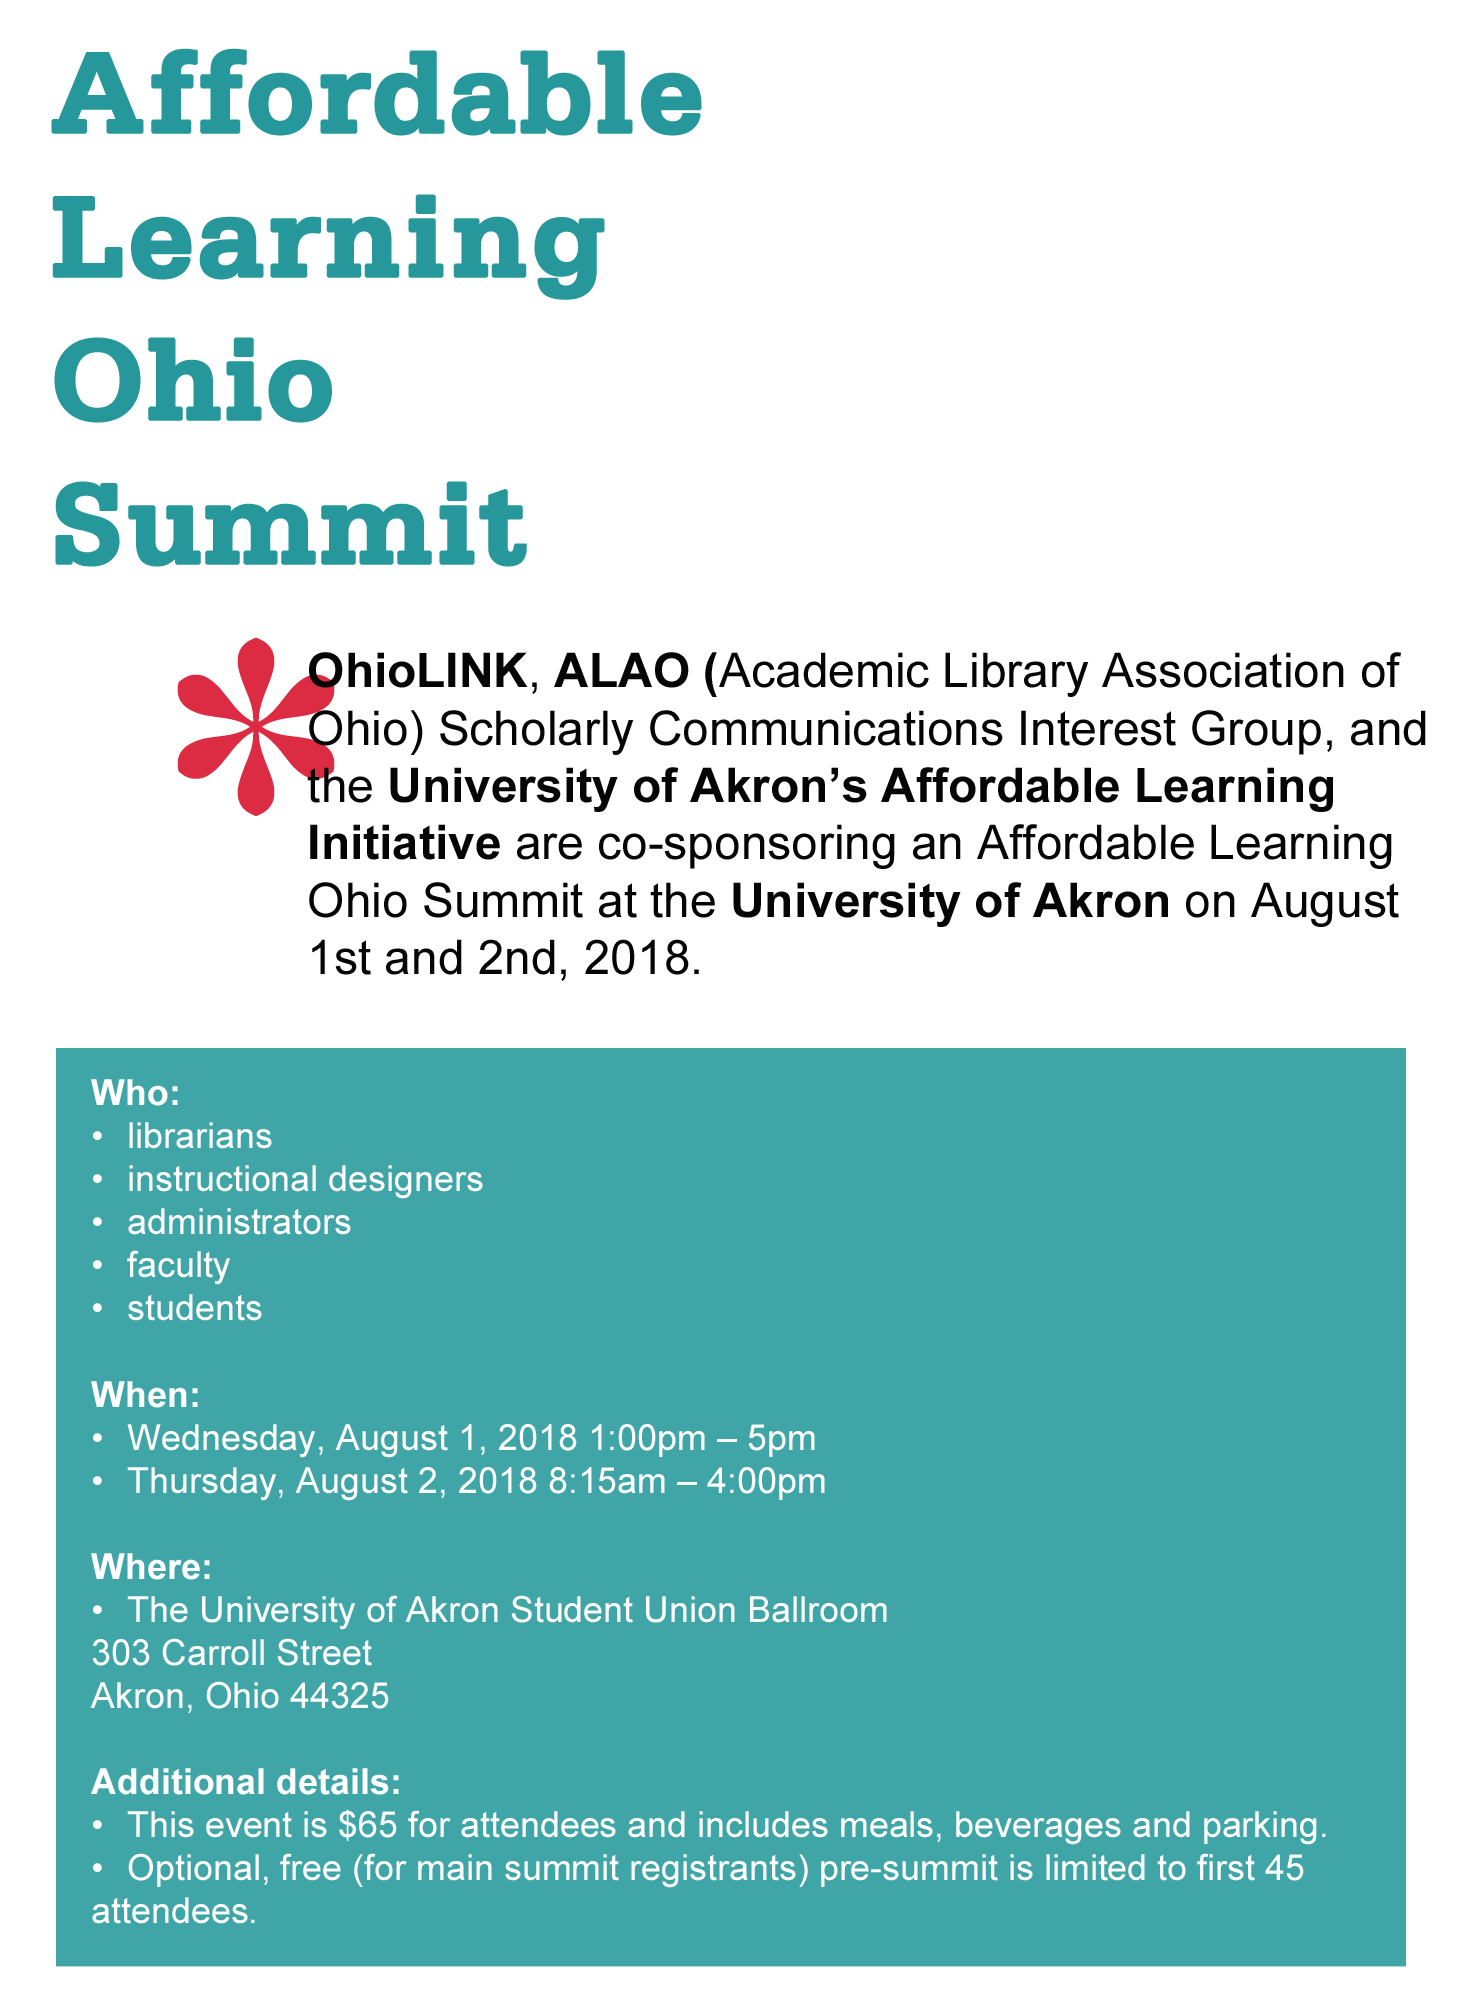 Affordable Learning Ohio Summit